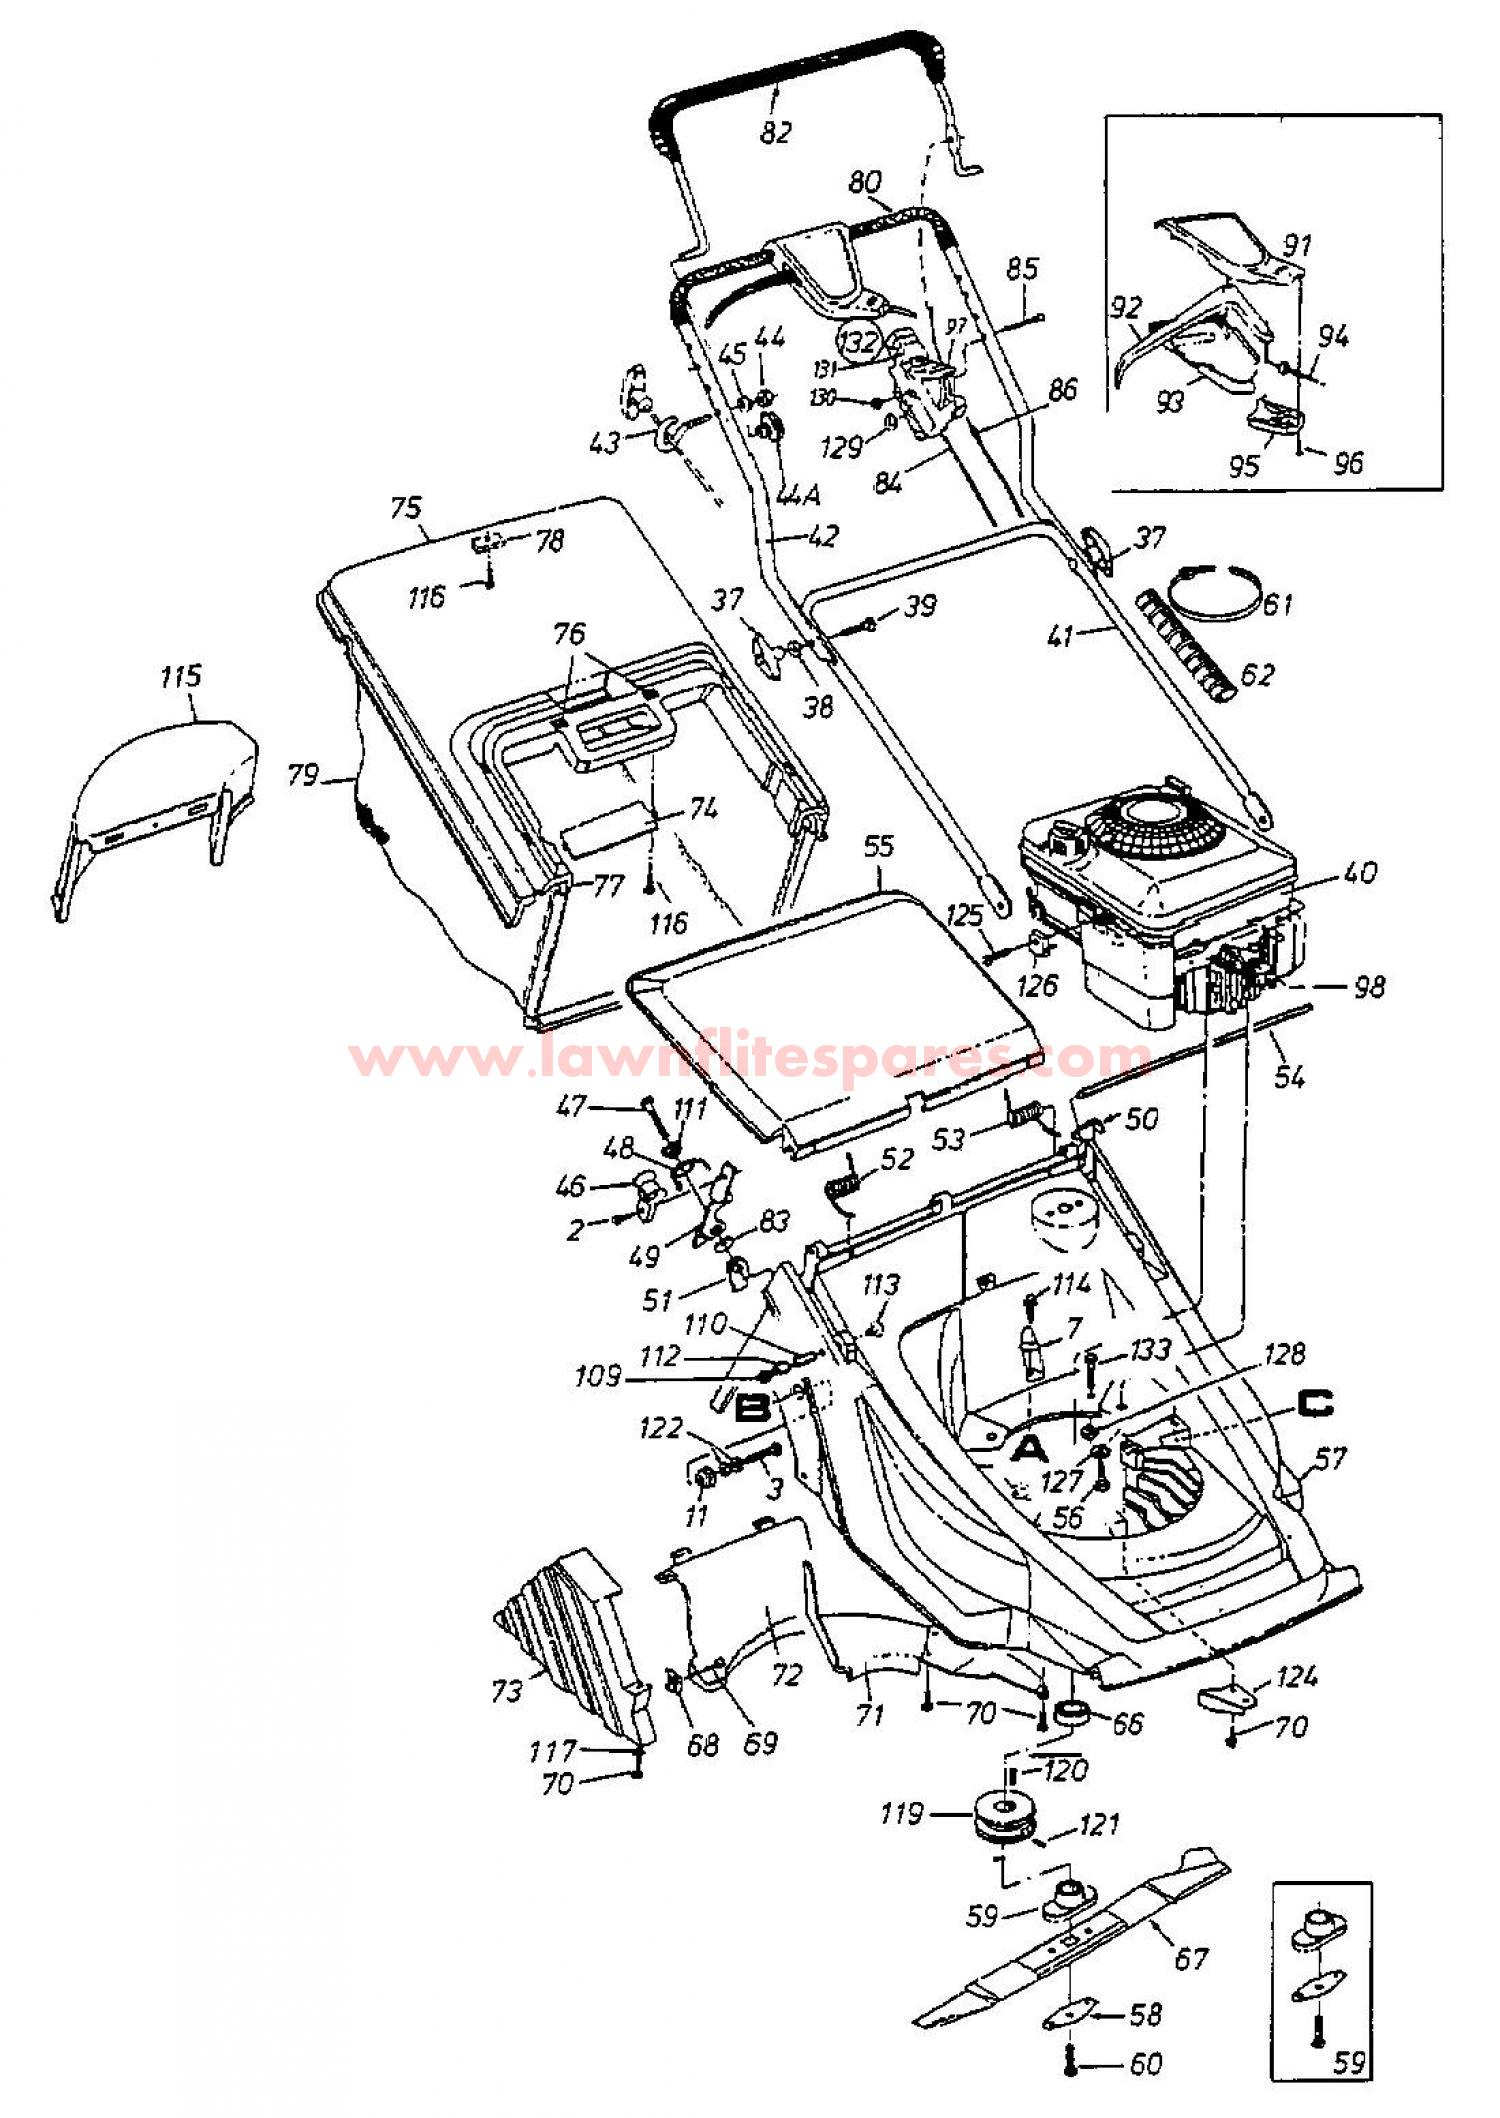 Friction Wheel And Drive besides Weed Eater Riding Lawn Mower Wiring Diagram additionally Honda Gx160 Engine Parts Diagram besides Webb 41cm 16 Push Steel Deck Petrol Rotary Mower 15159 P likewise Mower Deck Group. on electric self propelled push mower